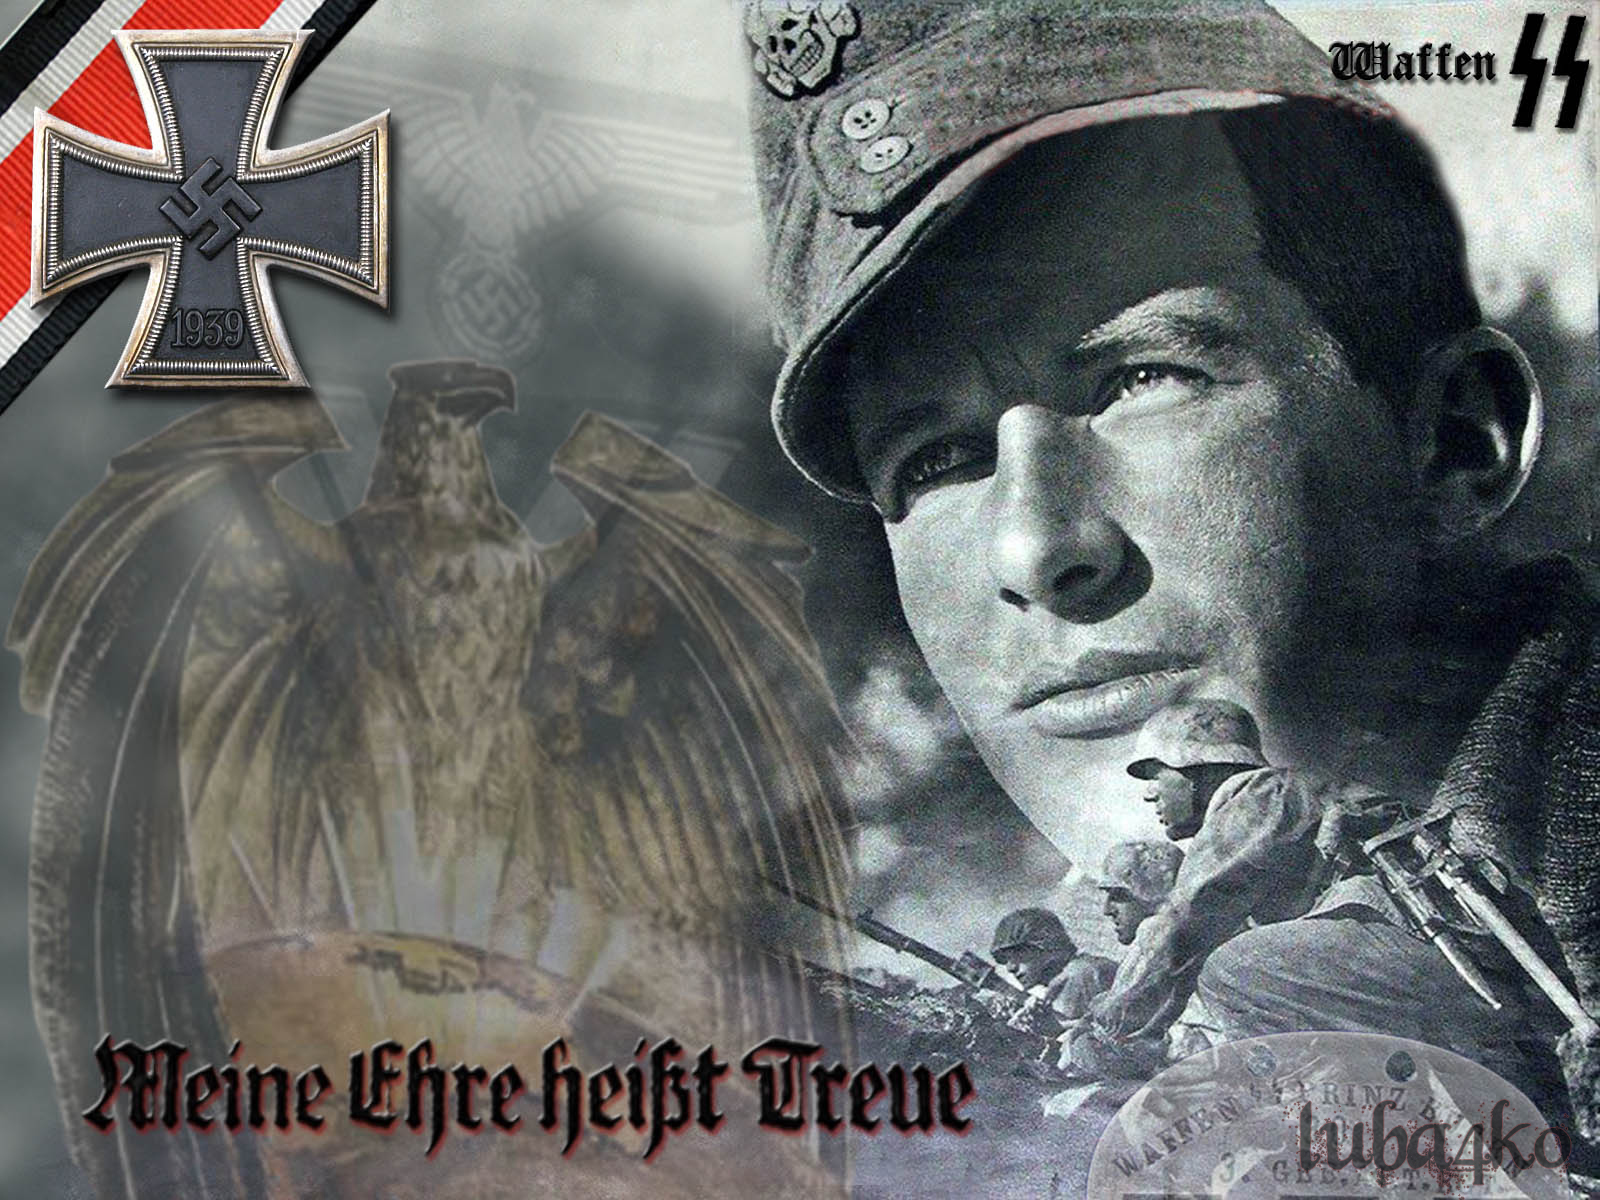 Waffen SS Wallpaper by luba4ko